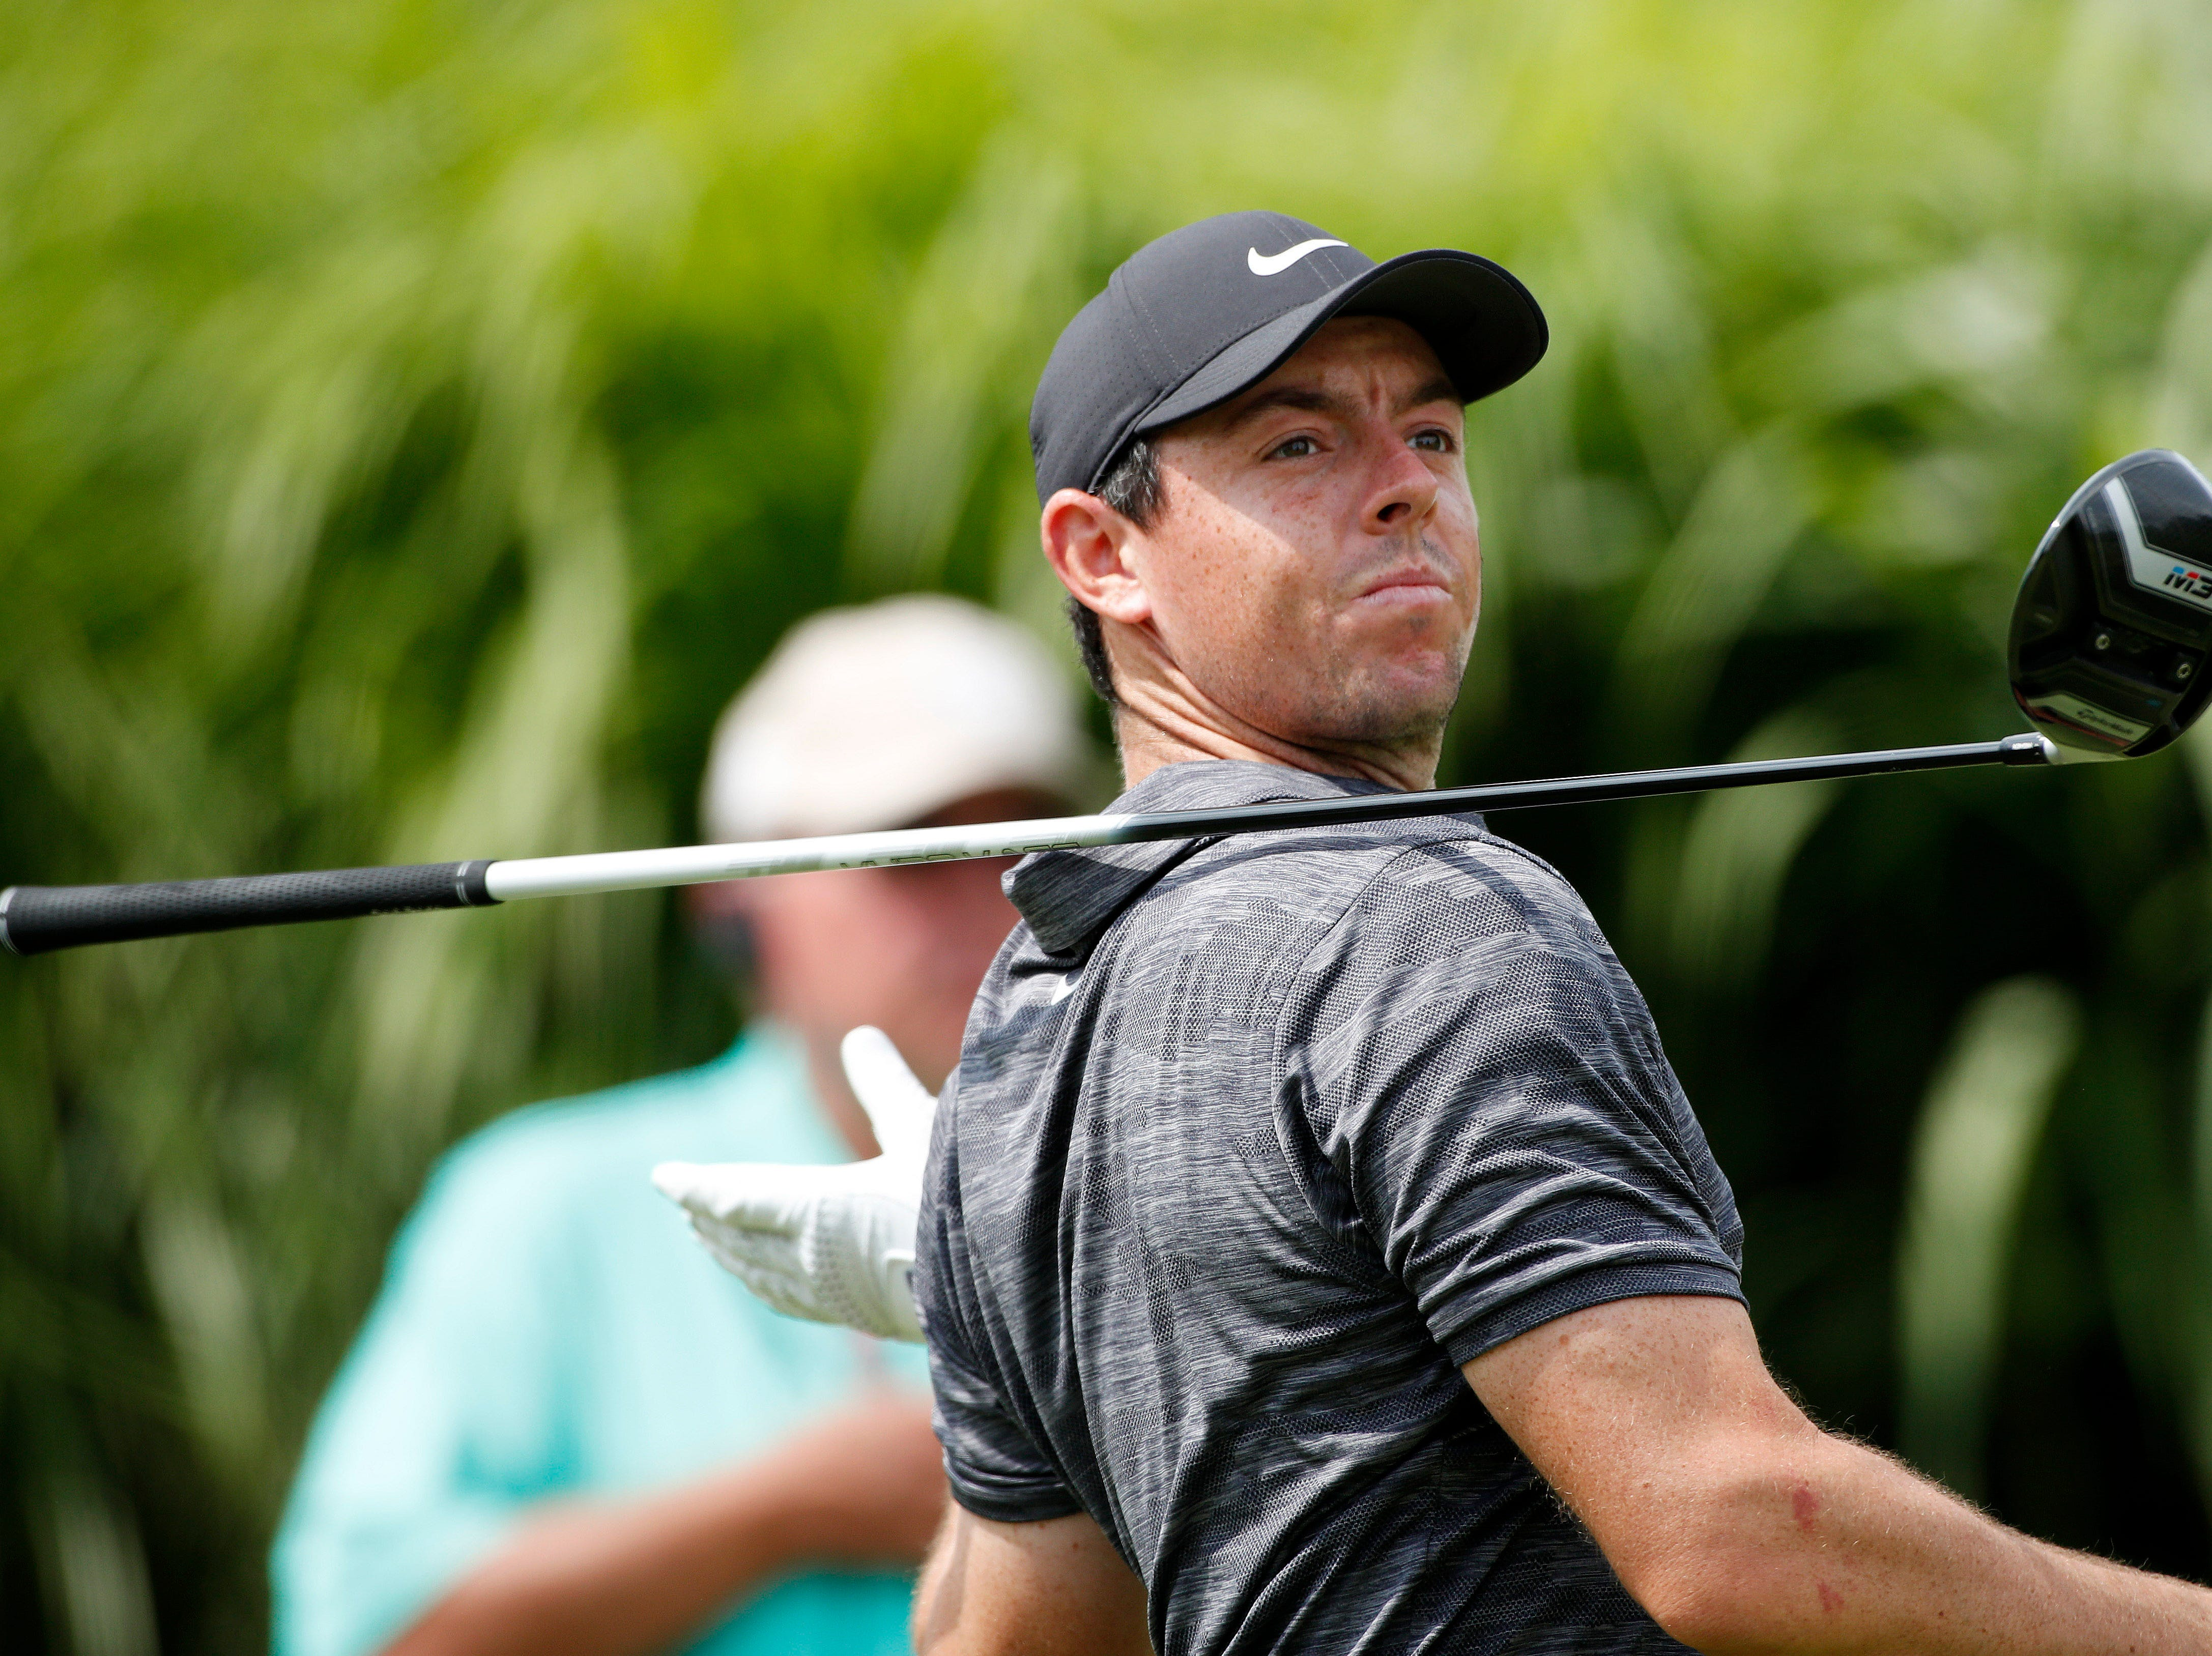 Aug. 2: Rory McIlroy drives off the 16th hole during the first round of the WGC - Bridgestone Invitational golf tournament at Firestone Country Club - South Course.